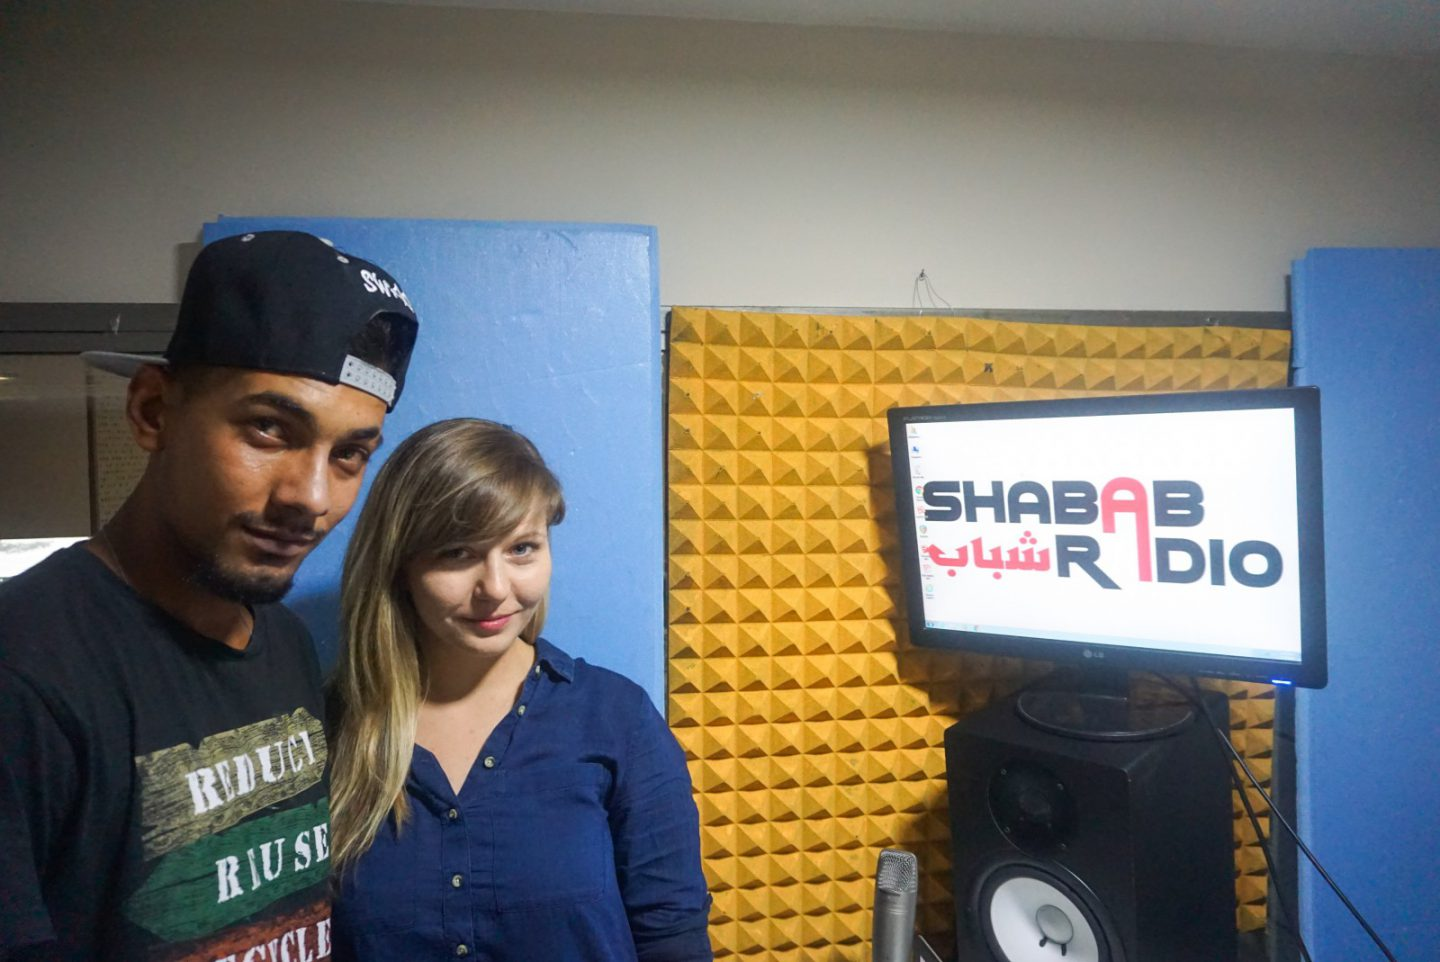 En direct de Shabab Radio